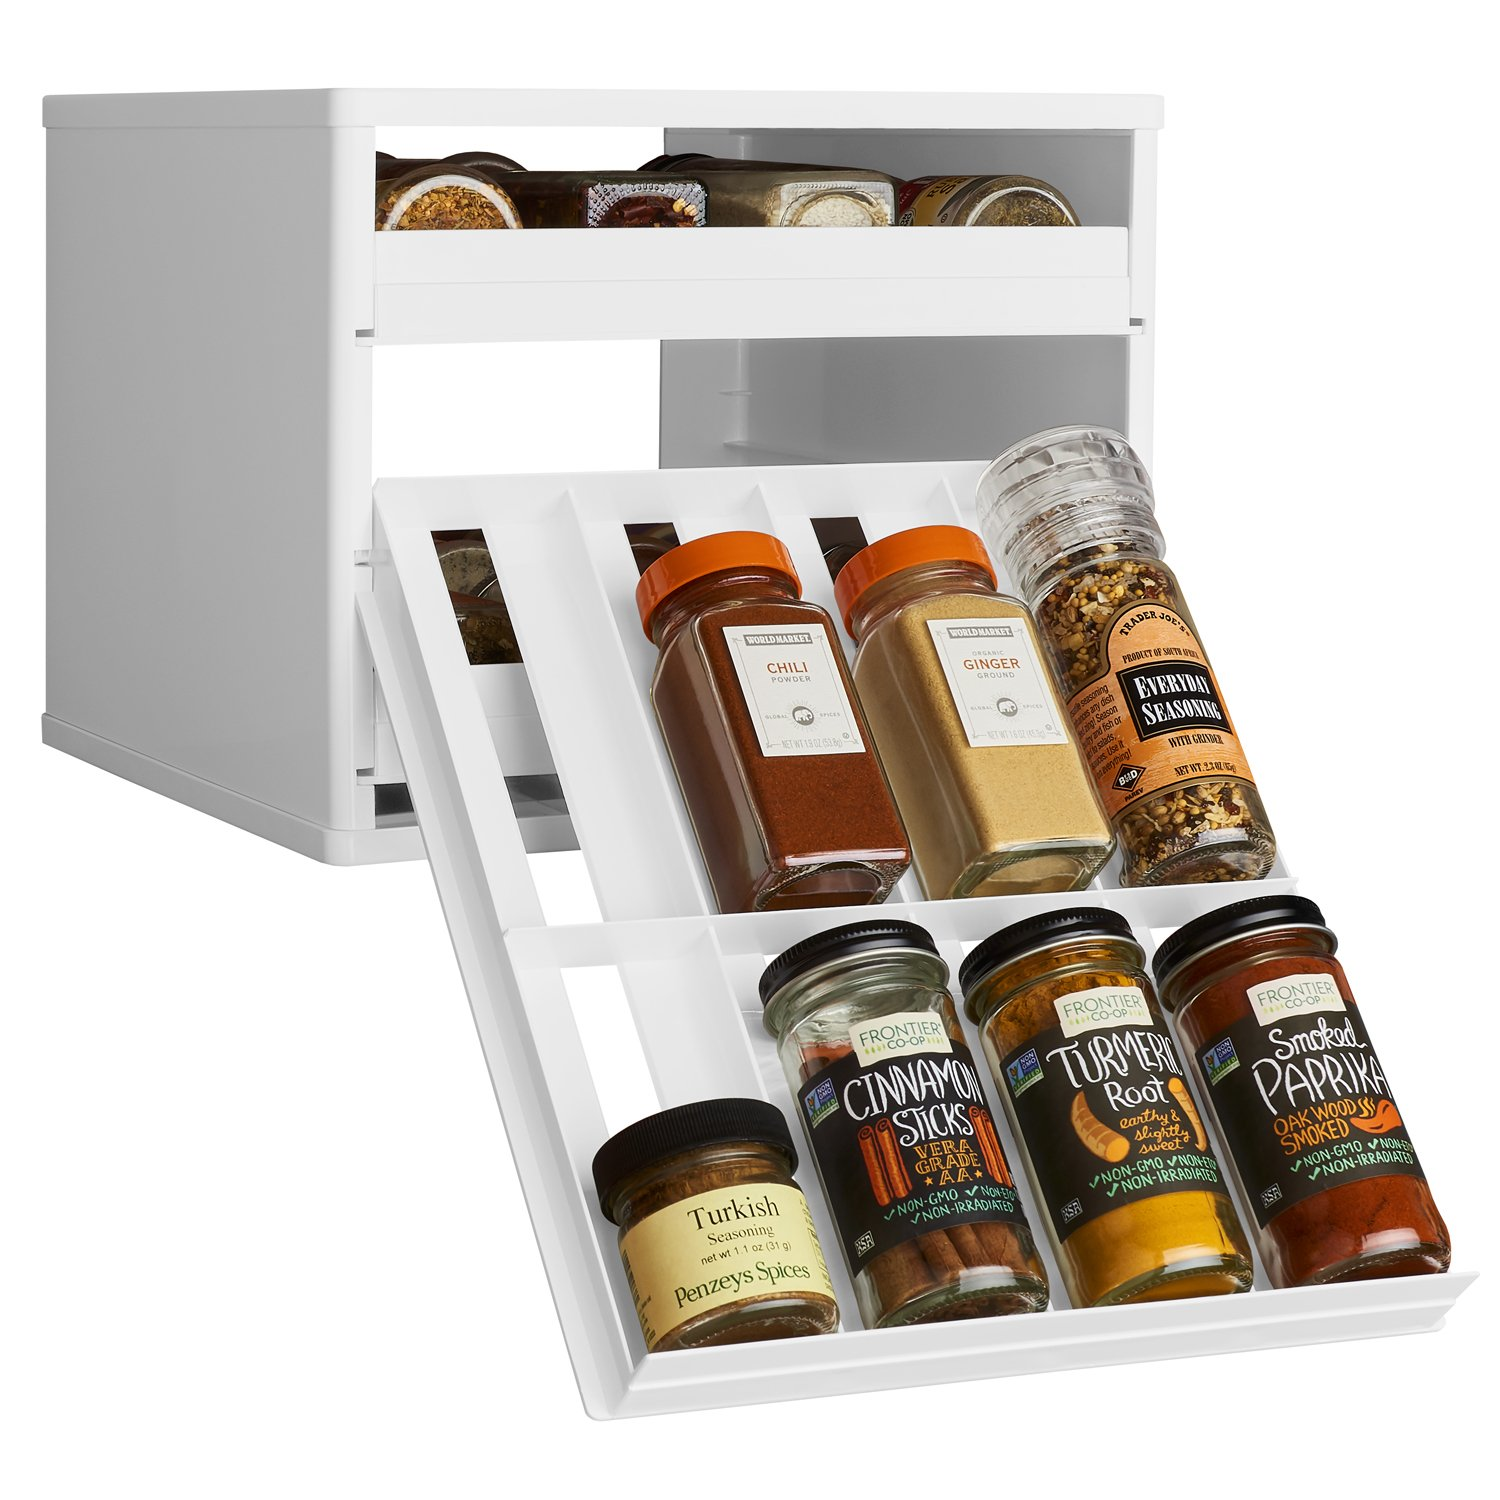 YouCopia Classic SpiceStack 24-Bottle Spice Organizer with Universal Drawers, White by YouCopia